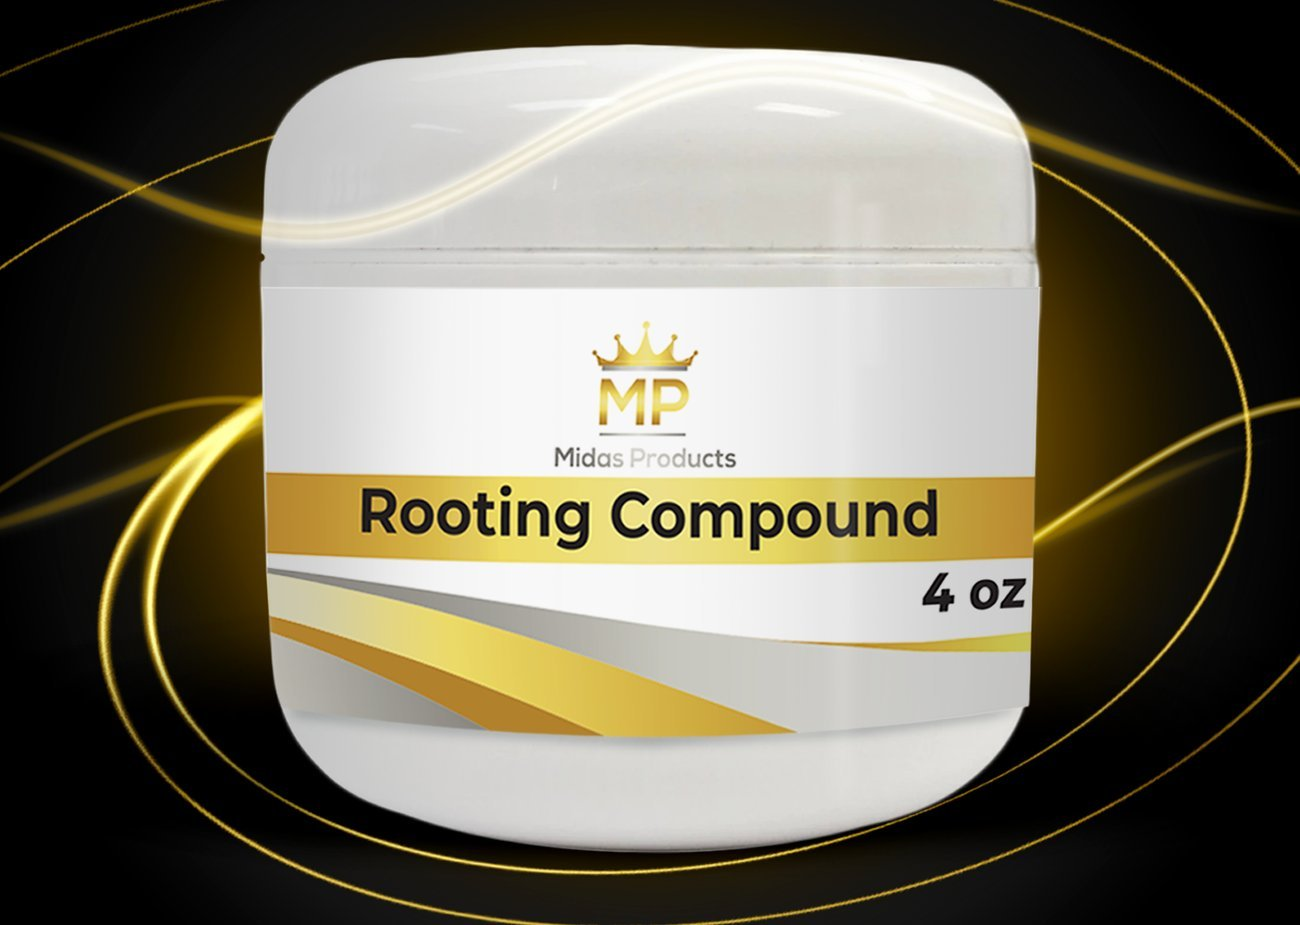 Rooting Gel – IBA Rooting Hormone- Ideal Cloning Gel for Strong Clones - The Key to Plant cloning - Midas Products Rooting Gel Hormone for cuttings 4oz - for Professional and Home Based Growers by Midas Products (Image #2)